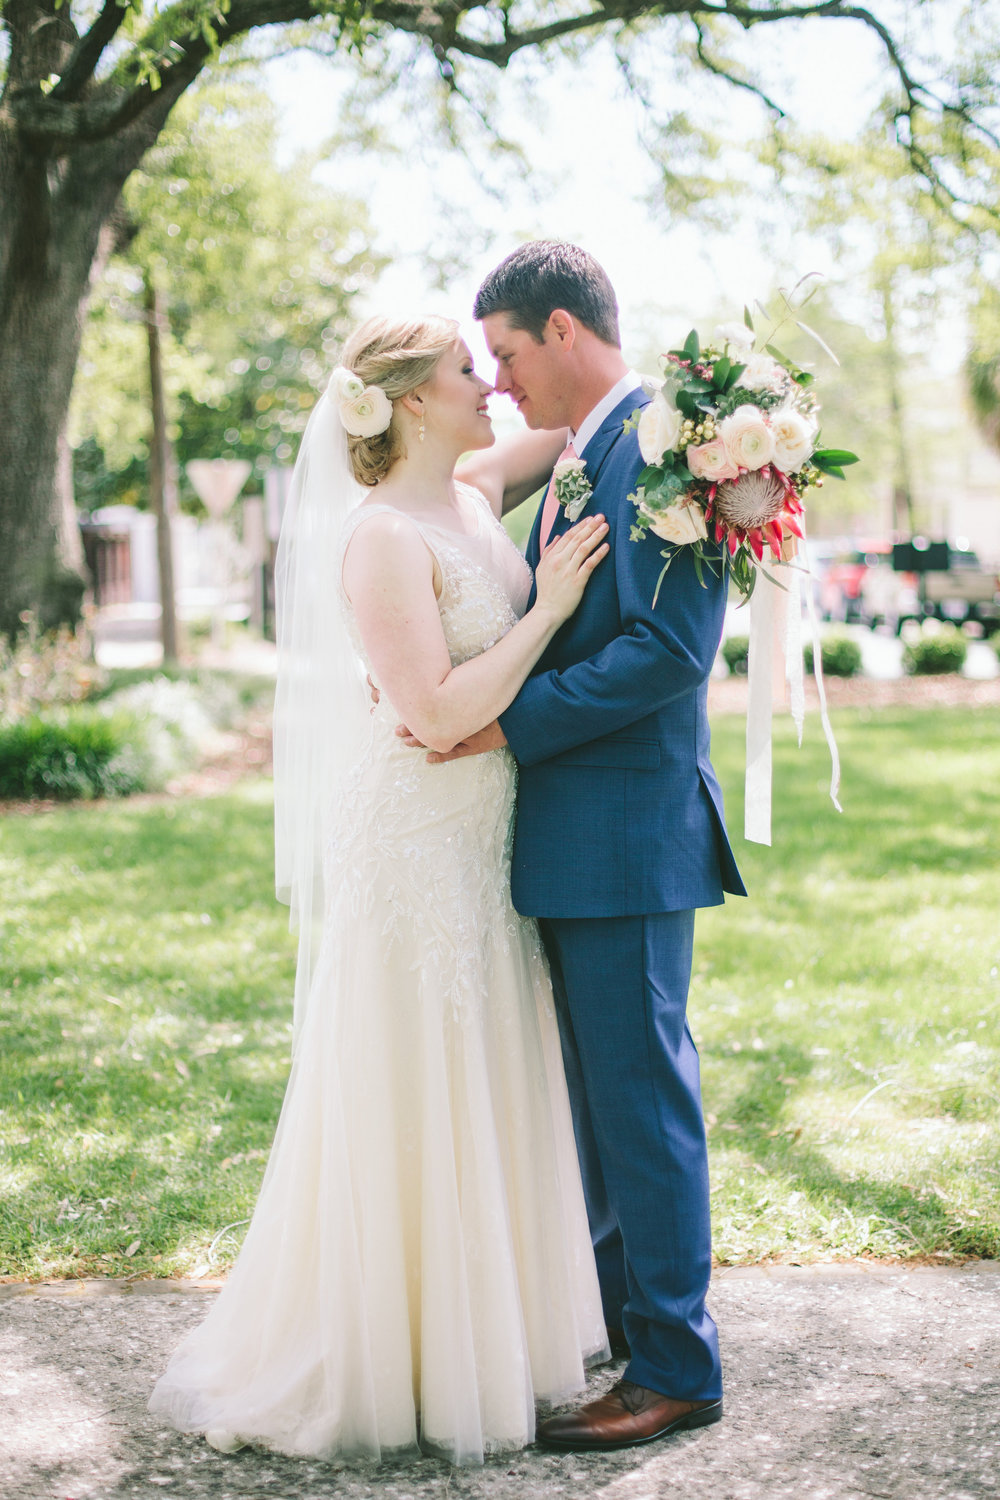 allison-blake-ivory-and-beau-bridal-boutique-savannah-wedding-planner-savannah-florist-jenna-davis-photography-cha-bella-wedding-warren-square-wedding-savannah-square-wedding-savannah-bridal-savannah-weddings-gettin-ready-16.jpg